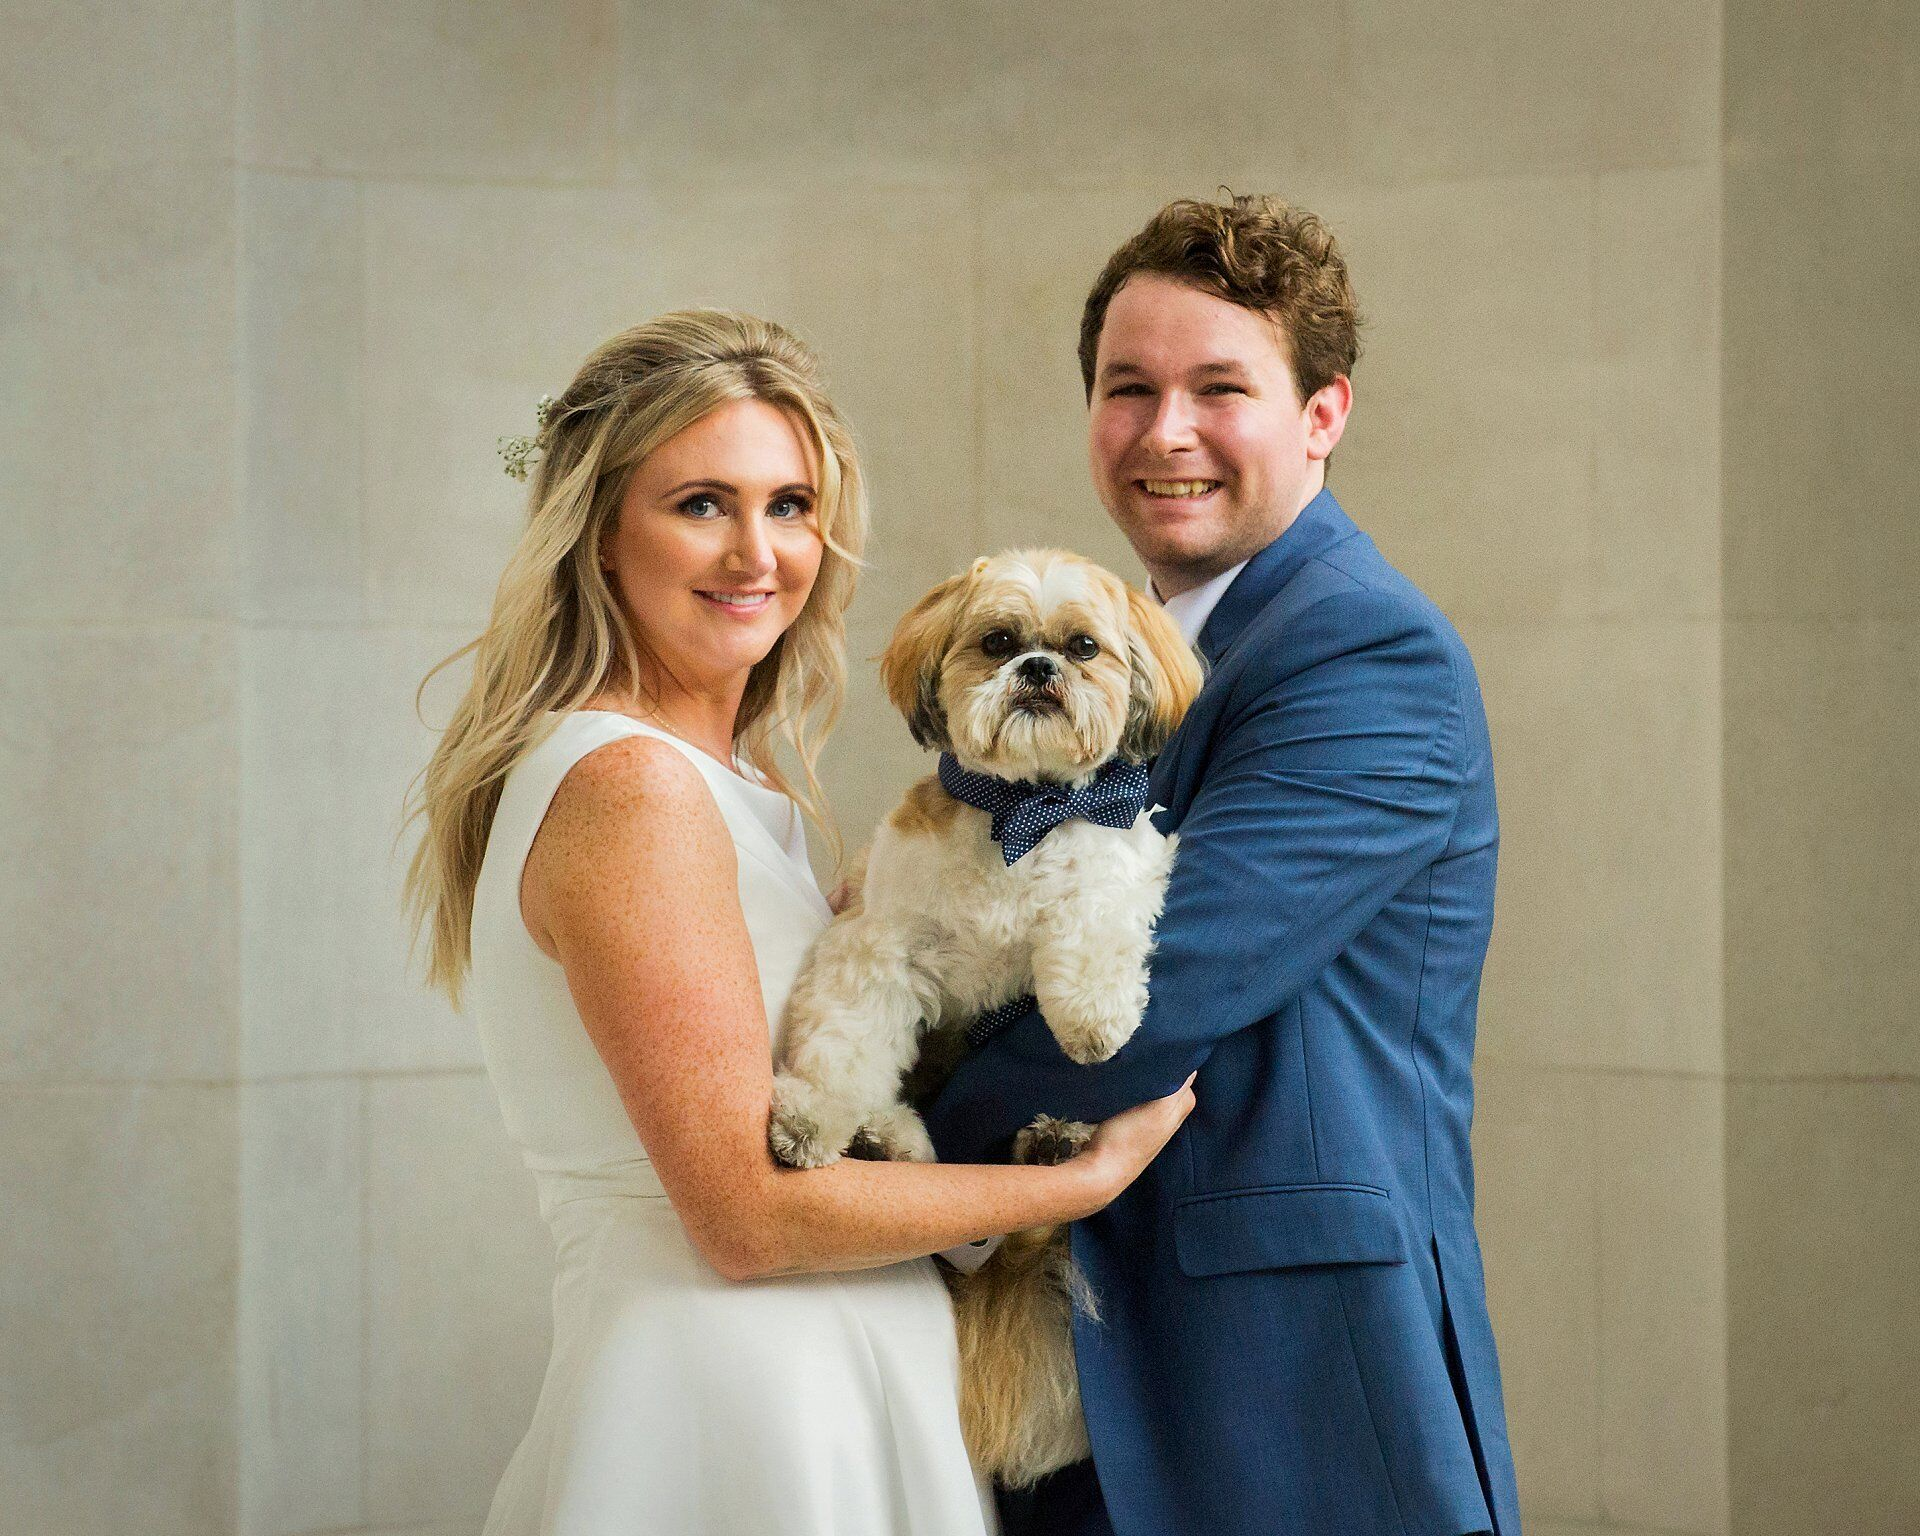 old marylebone town hall wedding dogs bride and groom celebrate their soho room civil wedding with pet shih tzu jasper london wedding photography by the hour